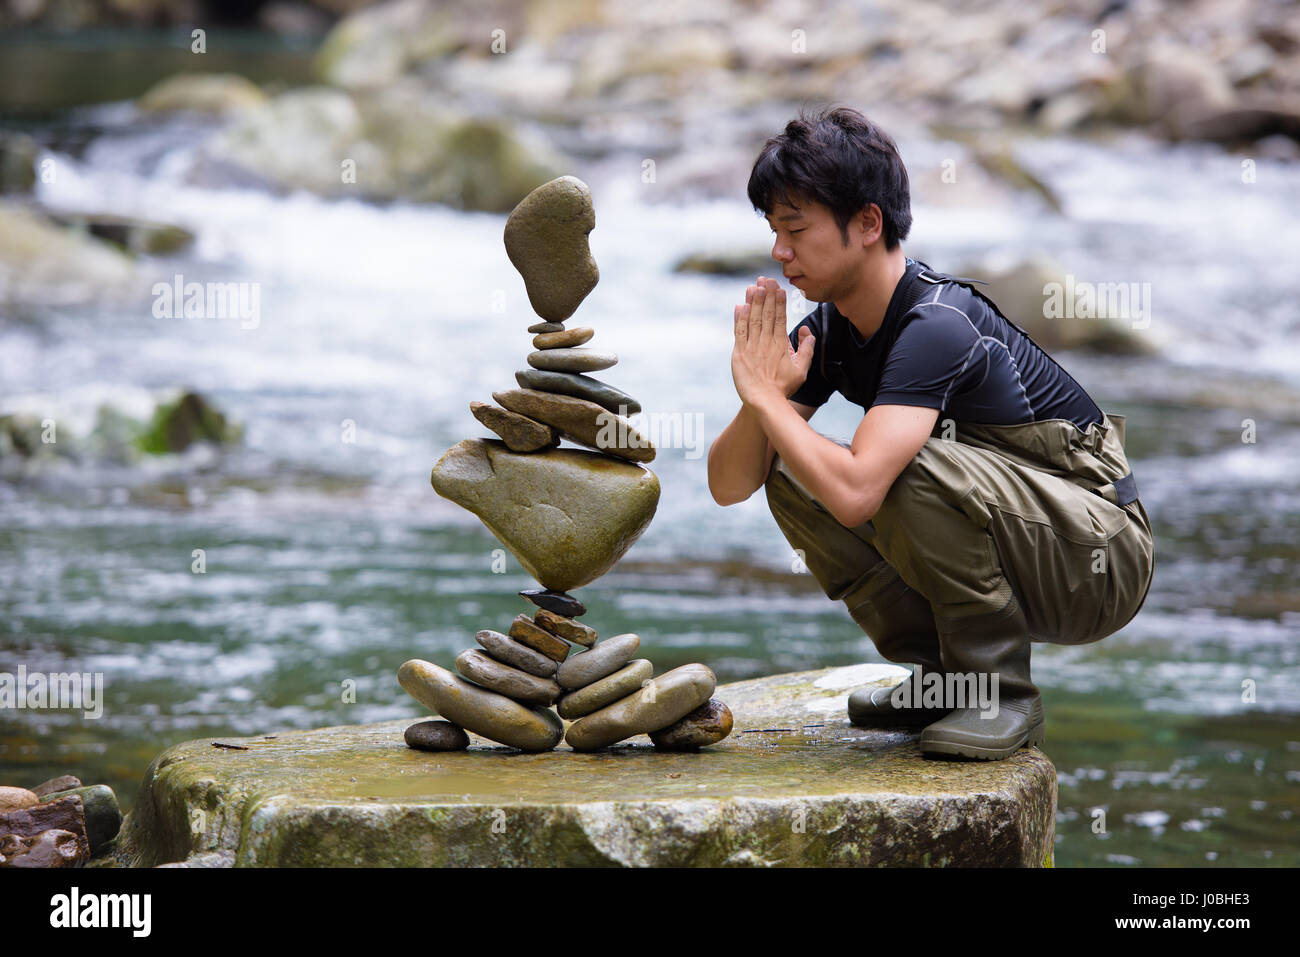 YASUKAWA VALLEY, JAPAN: INCREDIBLE pictures and video have captured the gravity-defying feats of one man who calls - Stock Image